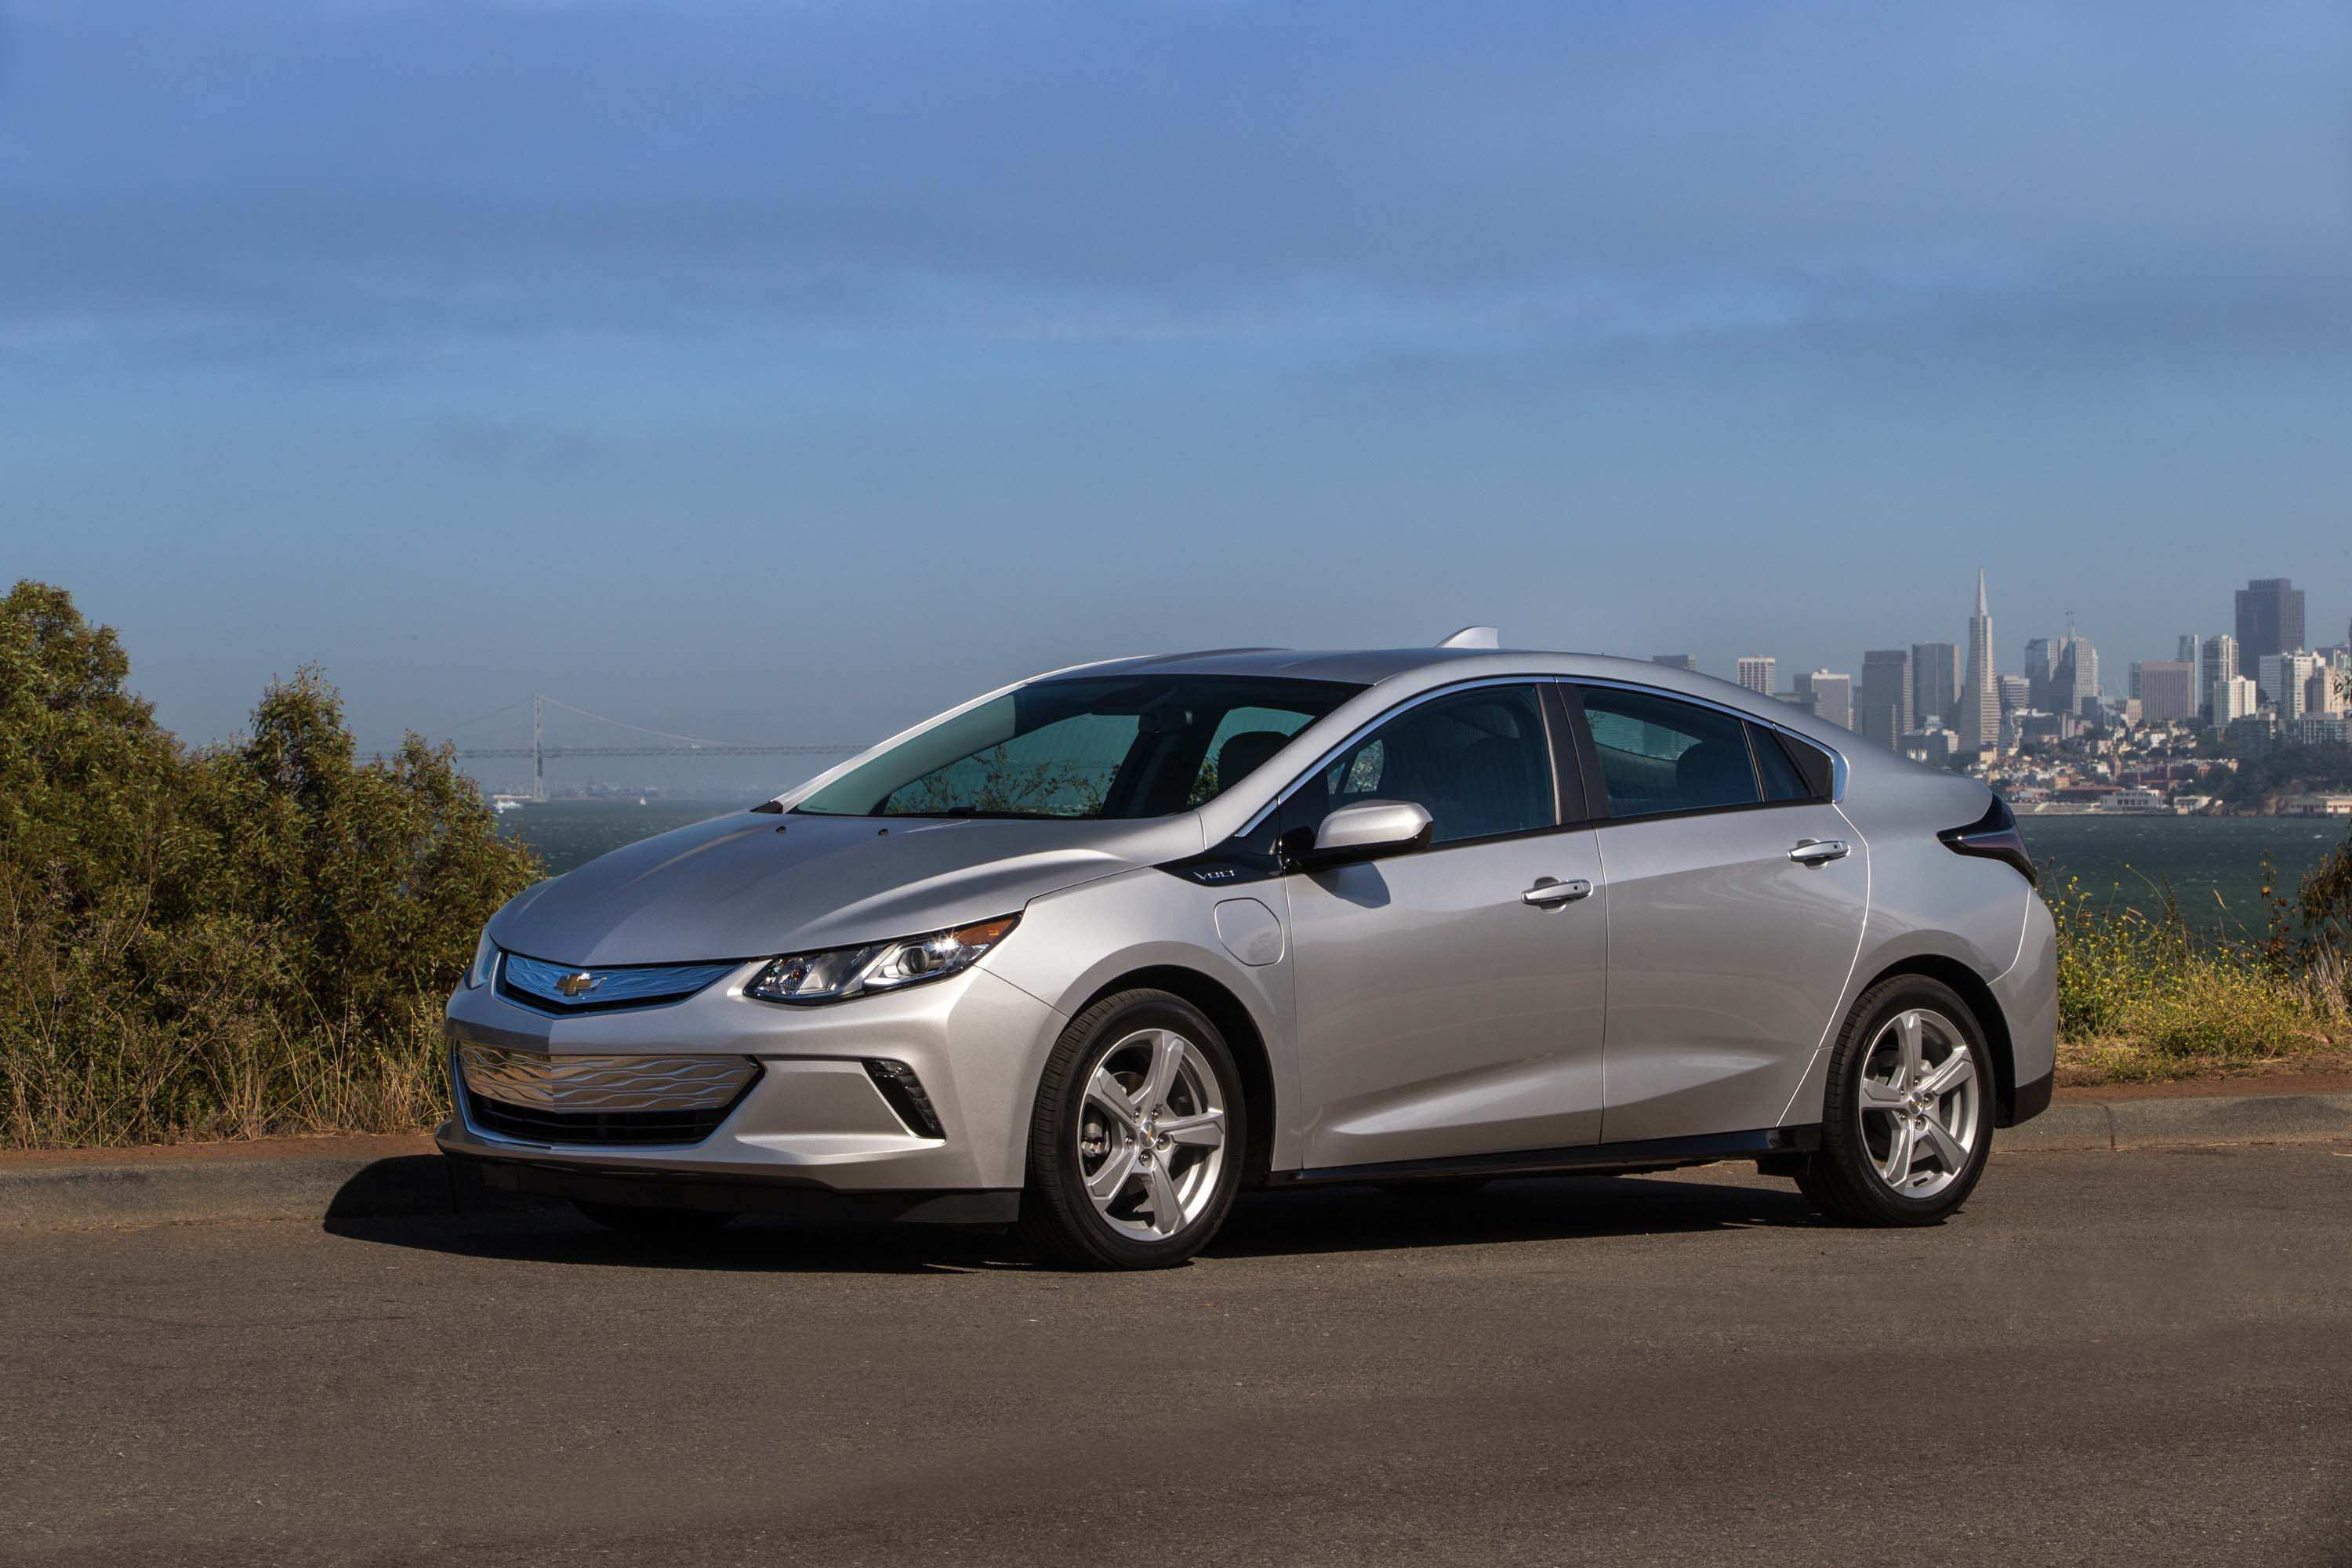 16 Concept of The Chevrolet Volt 2019 Price Overview And Price Review for The Chevrolet Volt 2019 Price Overview And Price